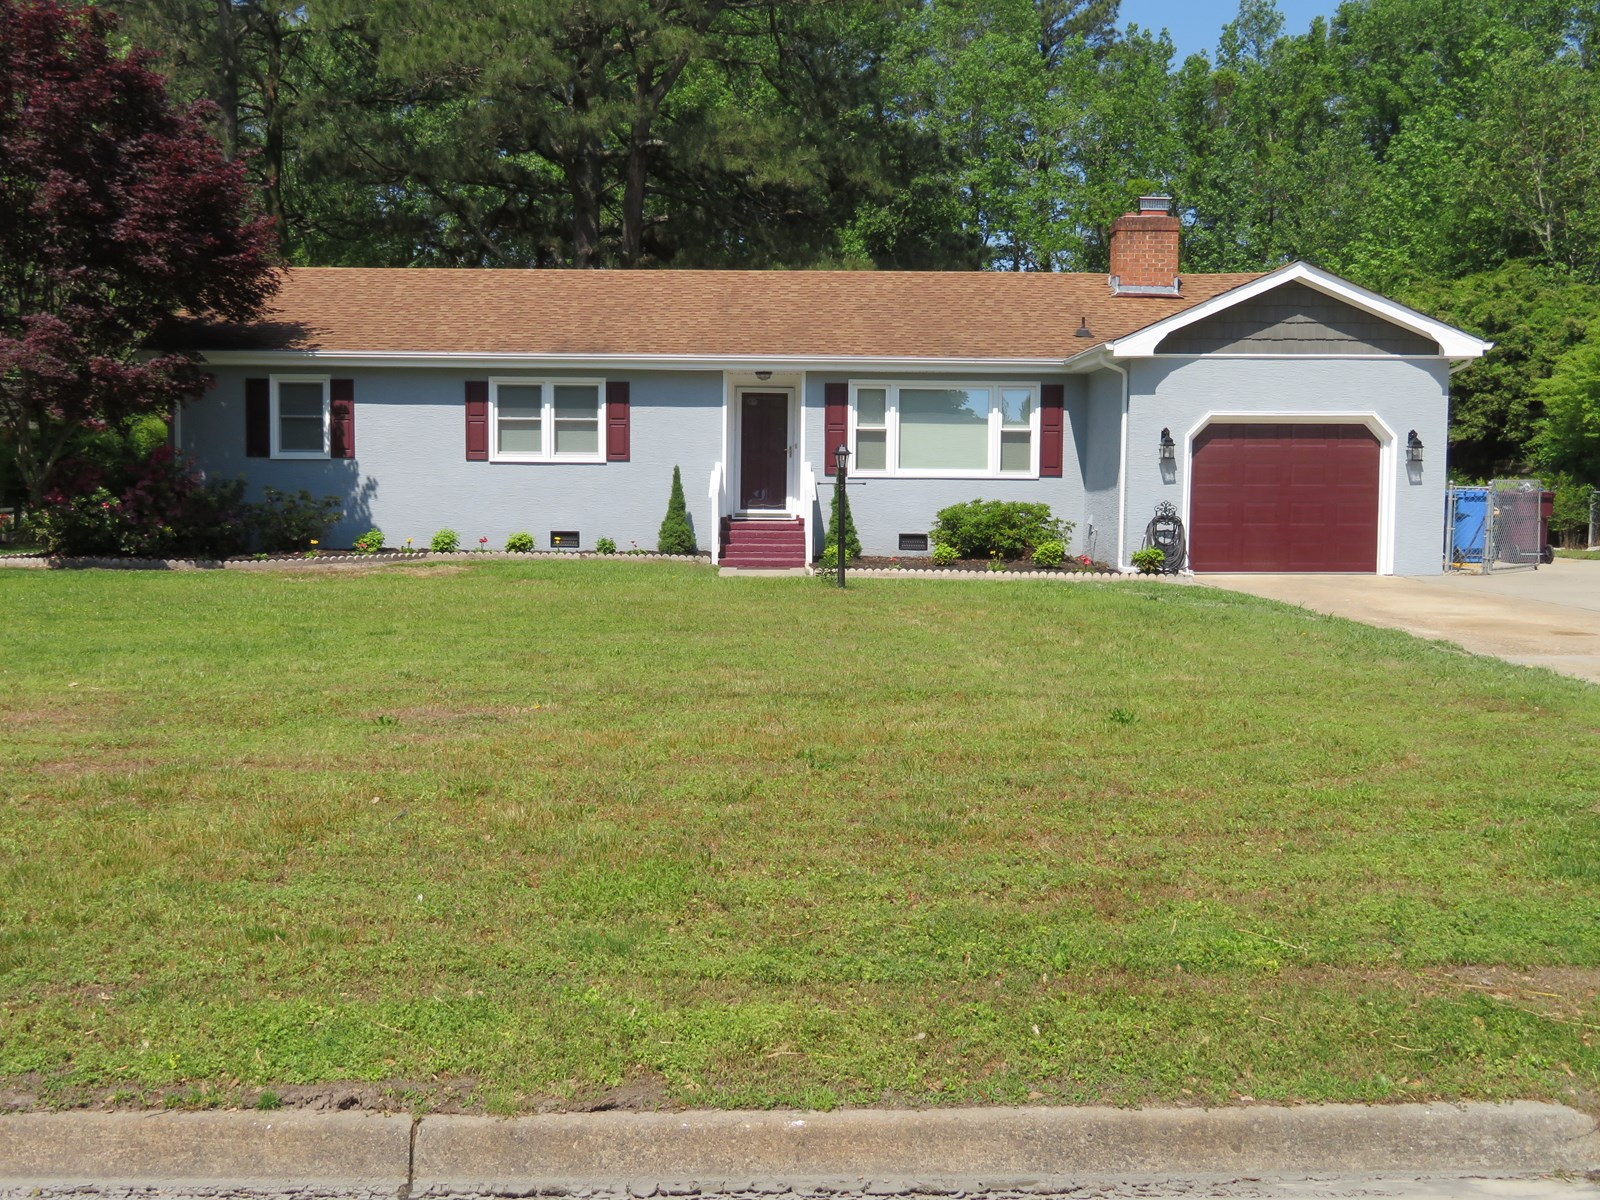 Chesapeake Home For Sale, Rural area with large lot!